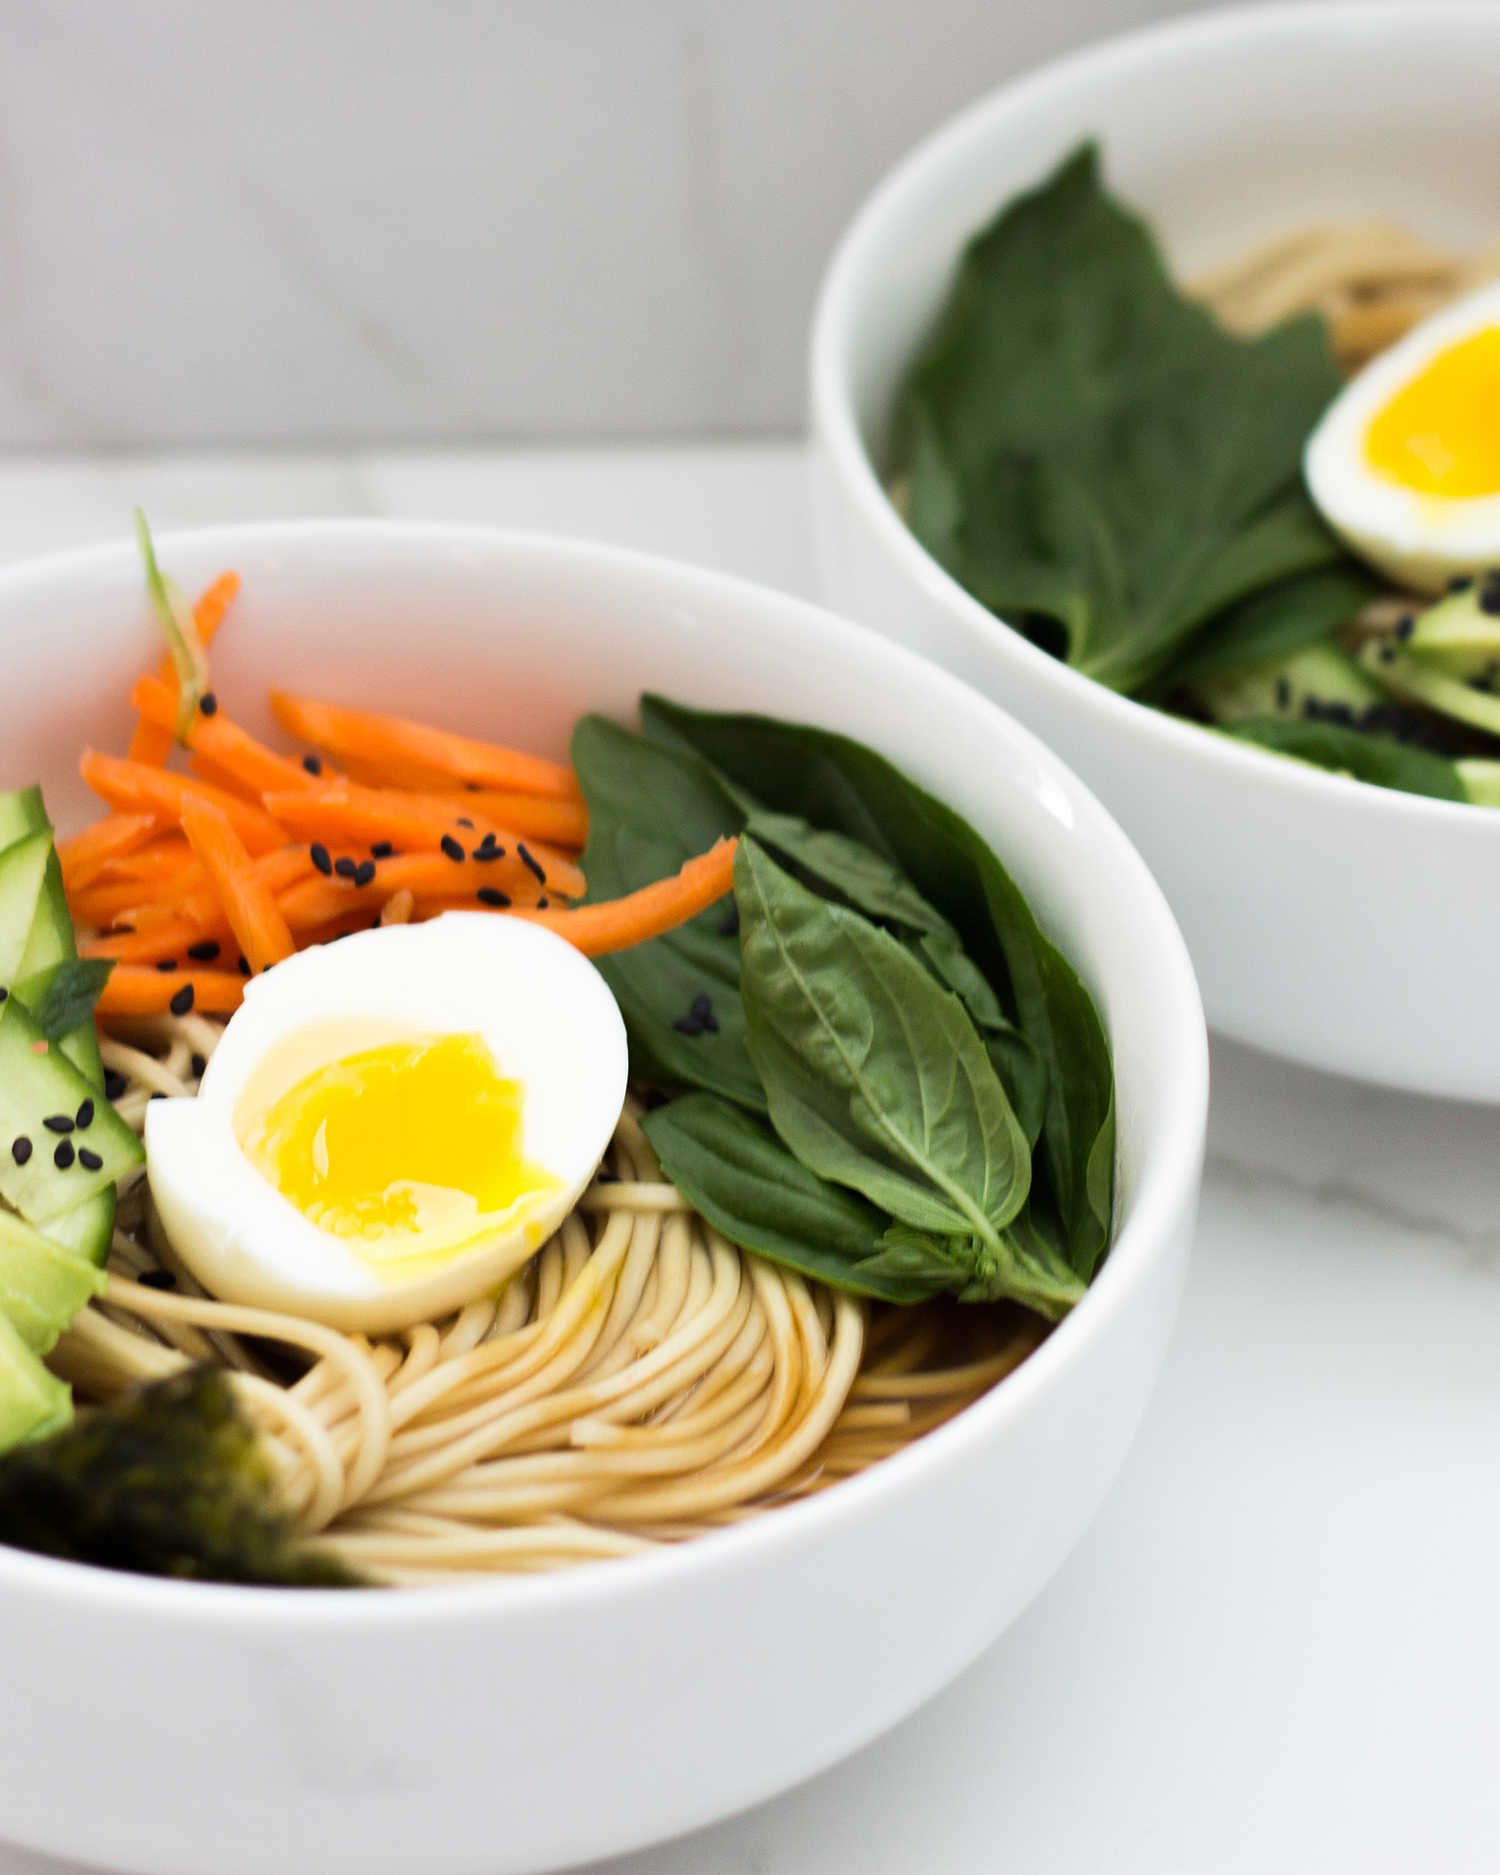 vegetarian-ramen-noodle-soup-simple-easy-homemade-livvyland-blog-austin-lifestyle-blogger-recipe-idea-1